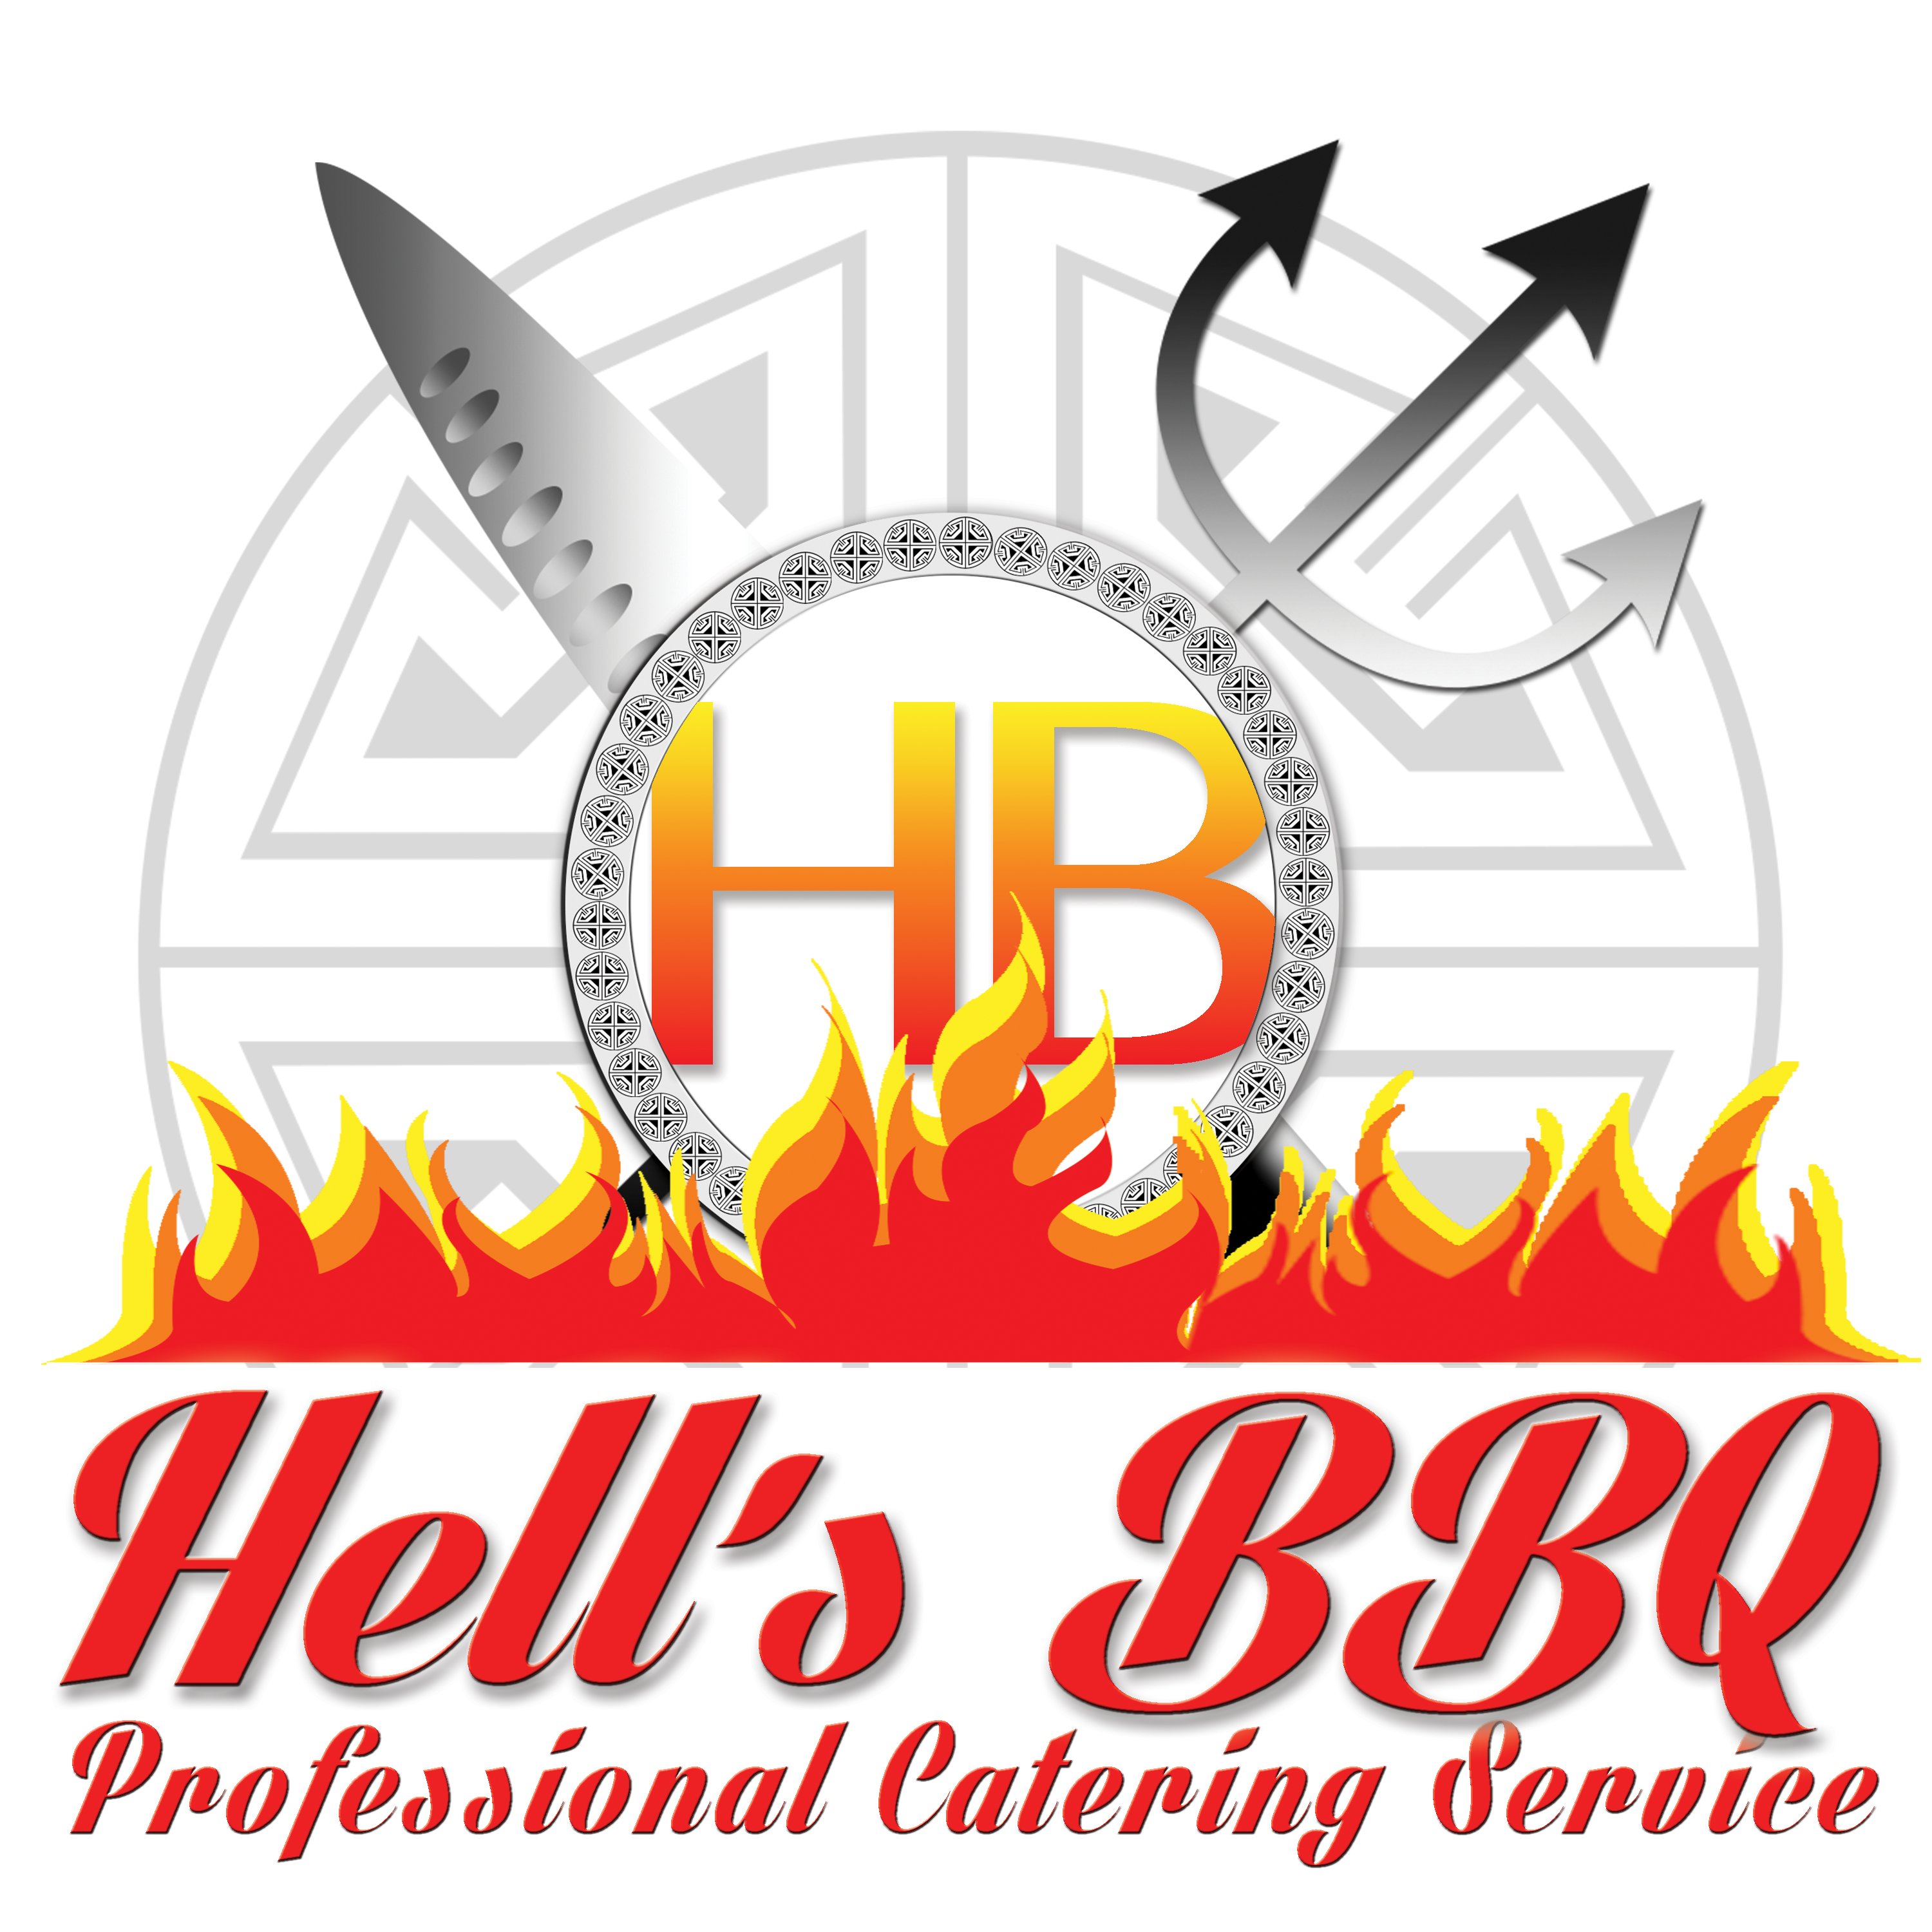 Hell's BBQ